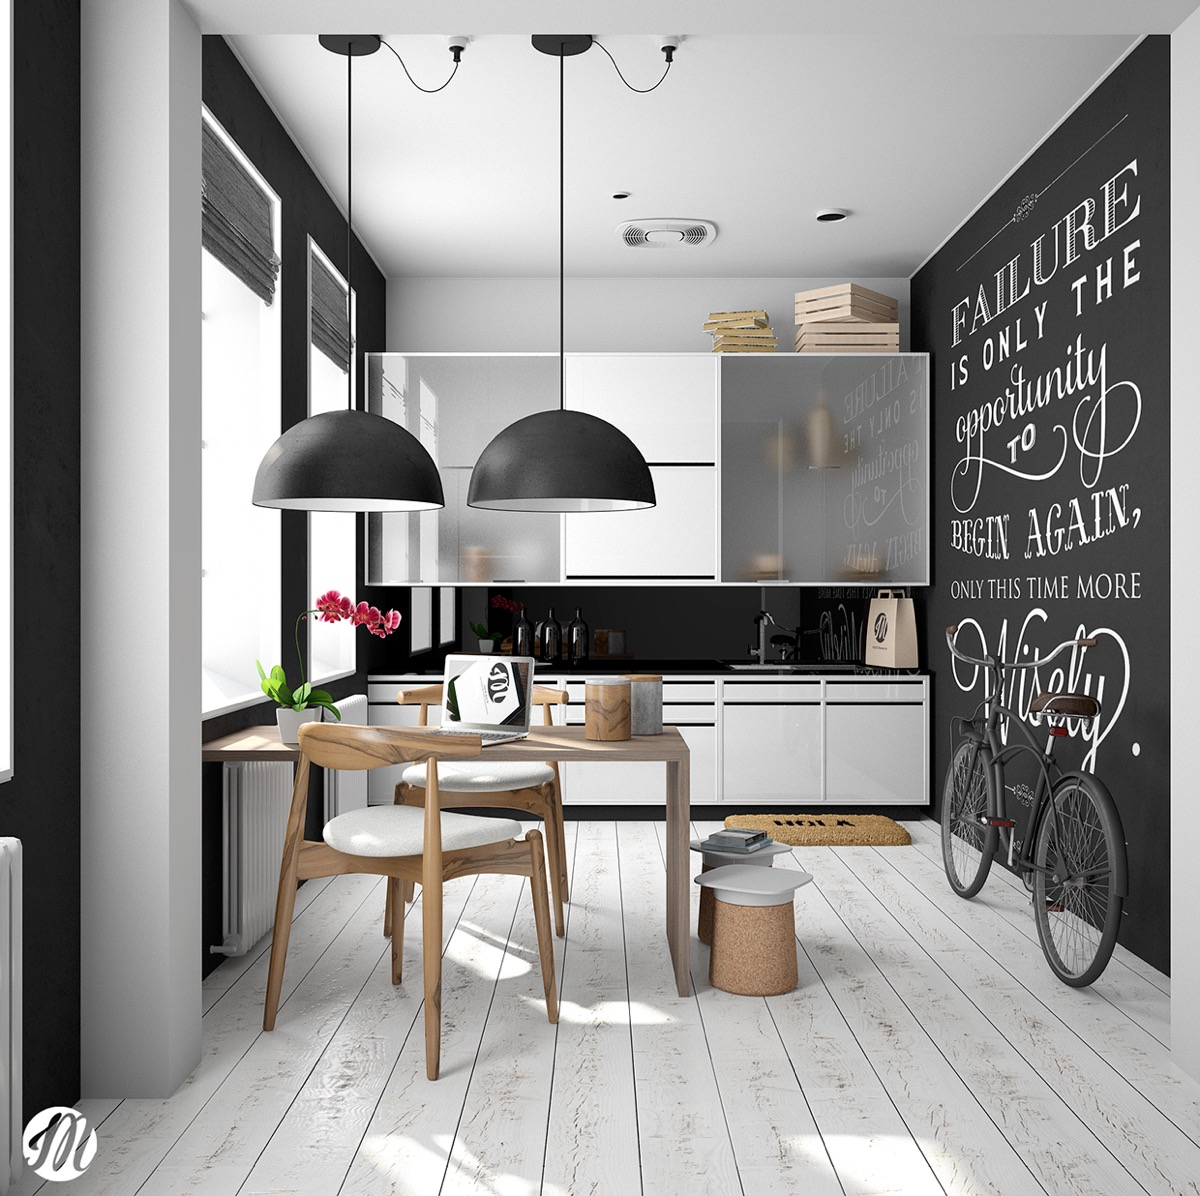 Image of: Scandinavian Dining Room Inspirational Chalkboard Quotes Awesome Decors